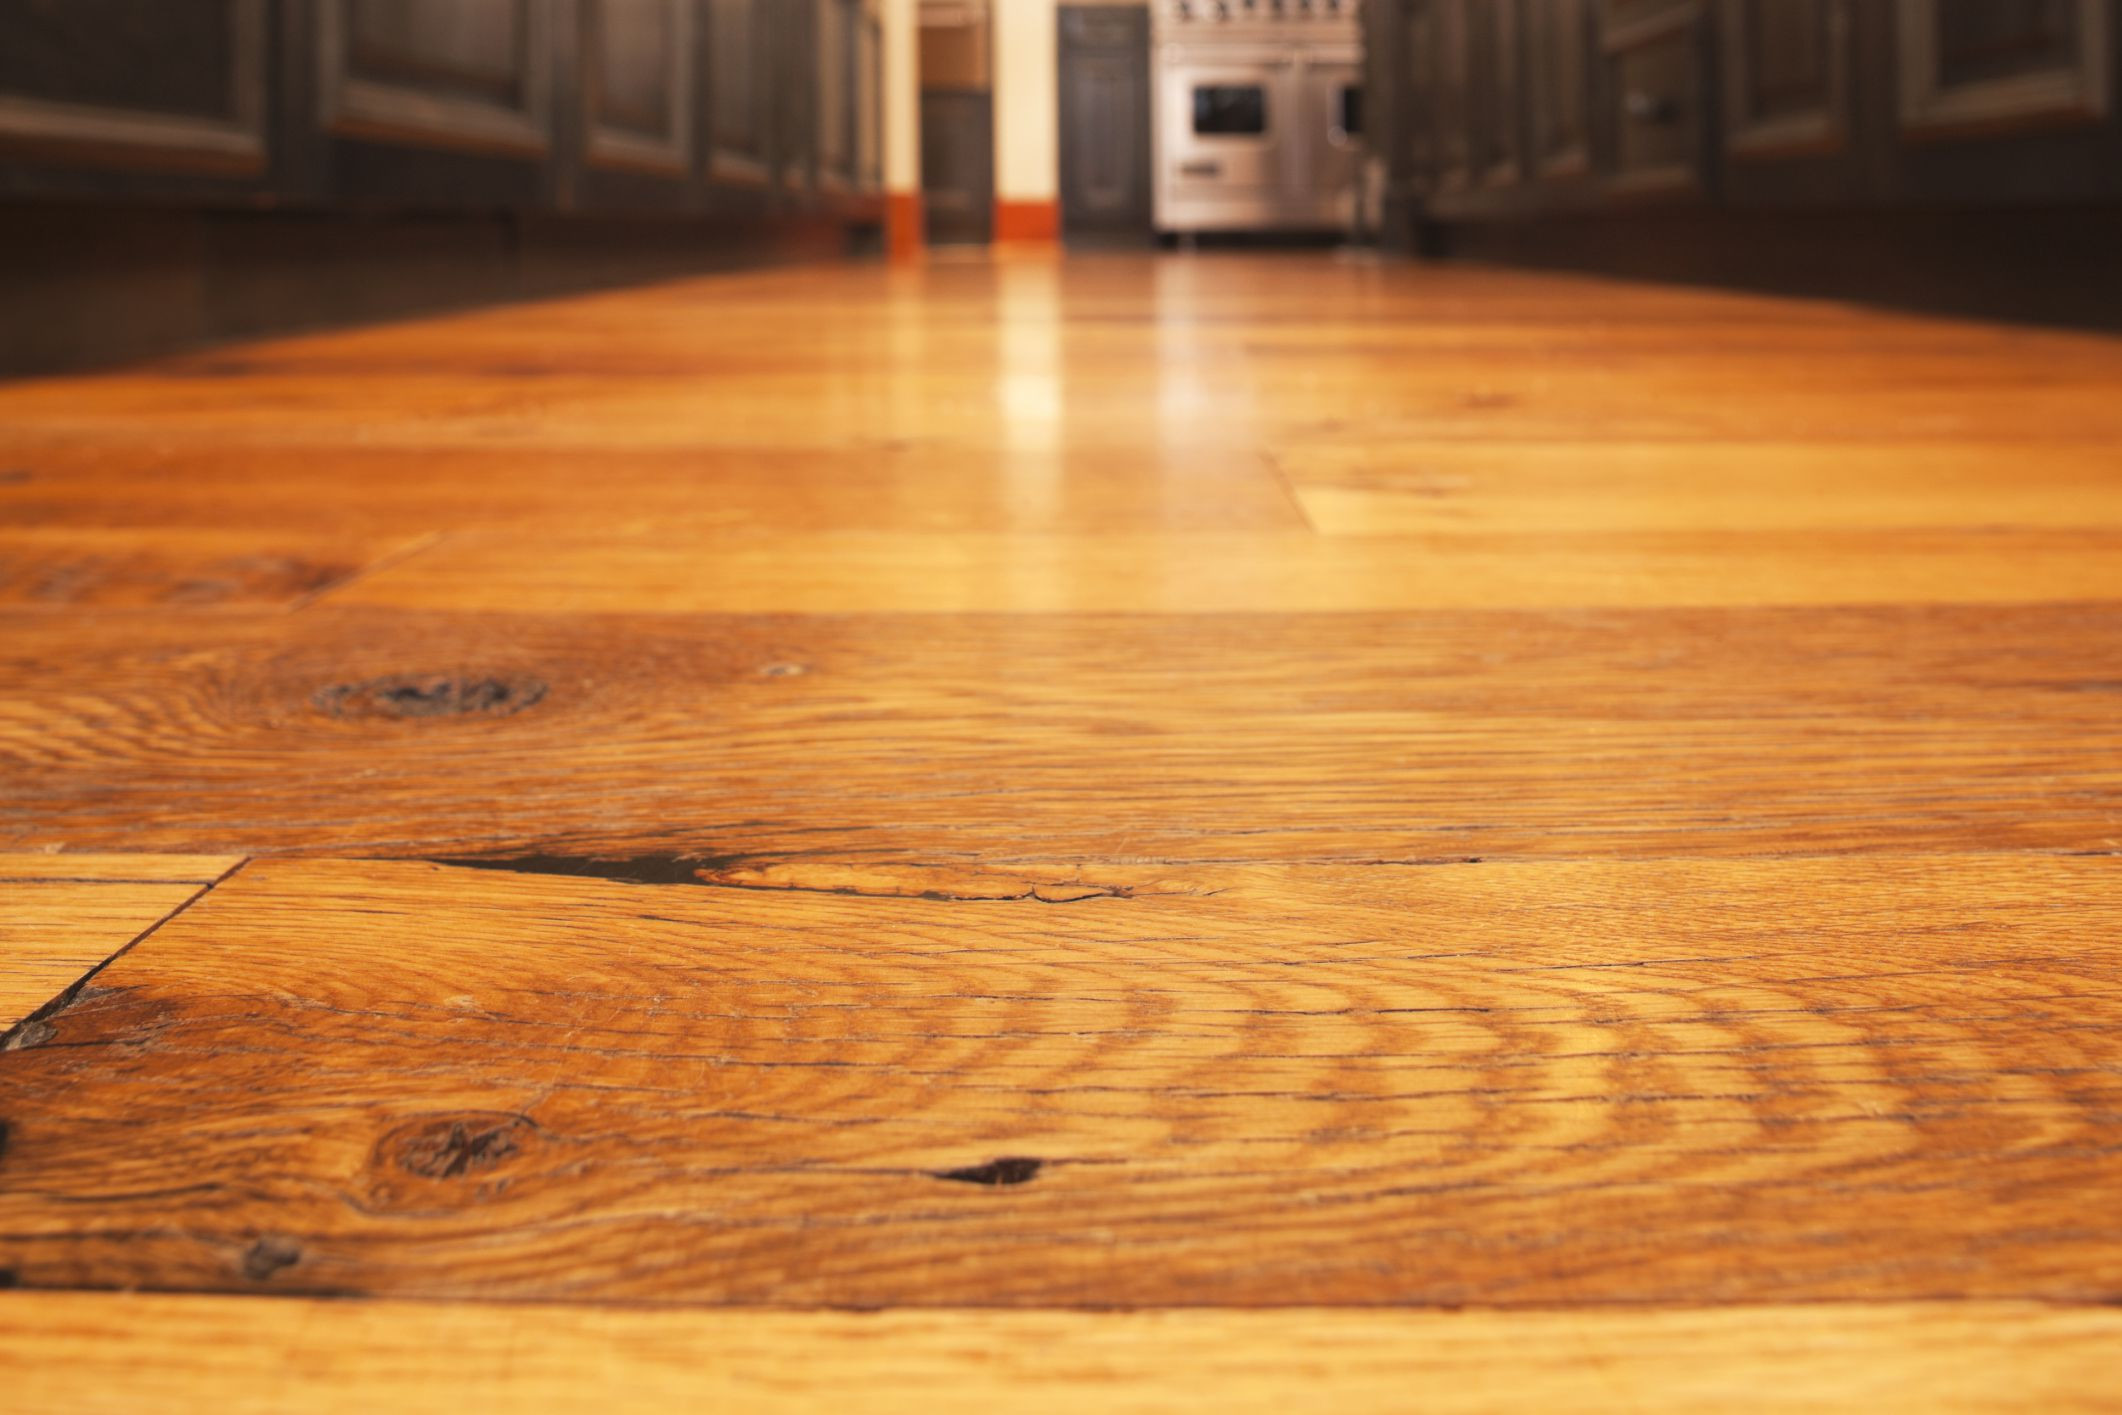 bruce locking hardwood flooring of why a microbevel is on your flooring intended for wood floor closeup microbevel 56a4a13f5f9b58b7d0d7e5f4